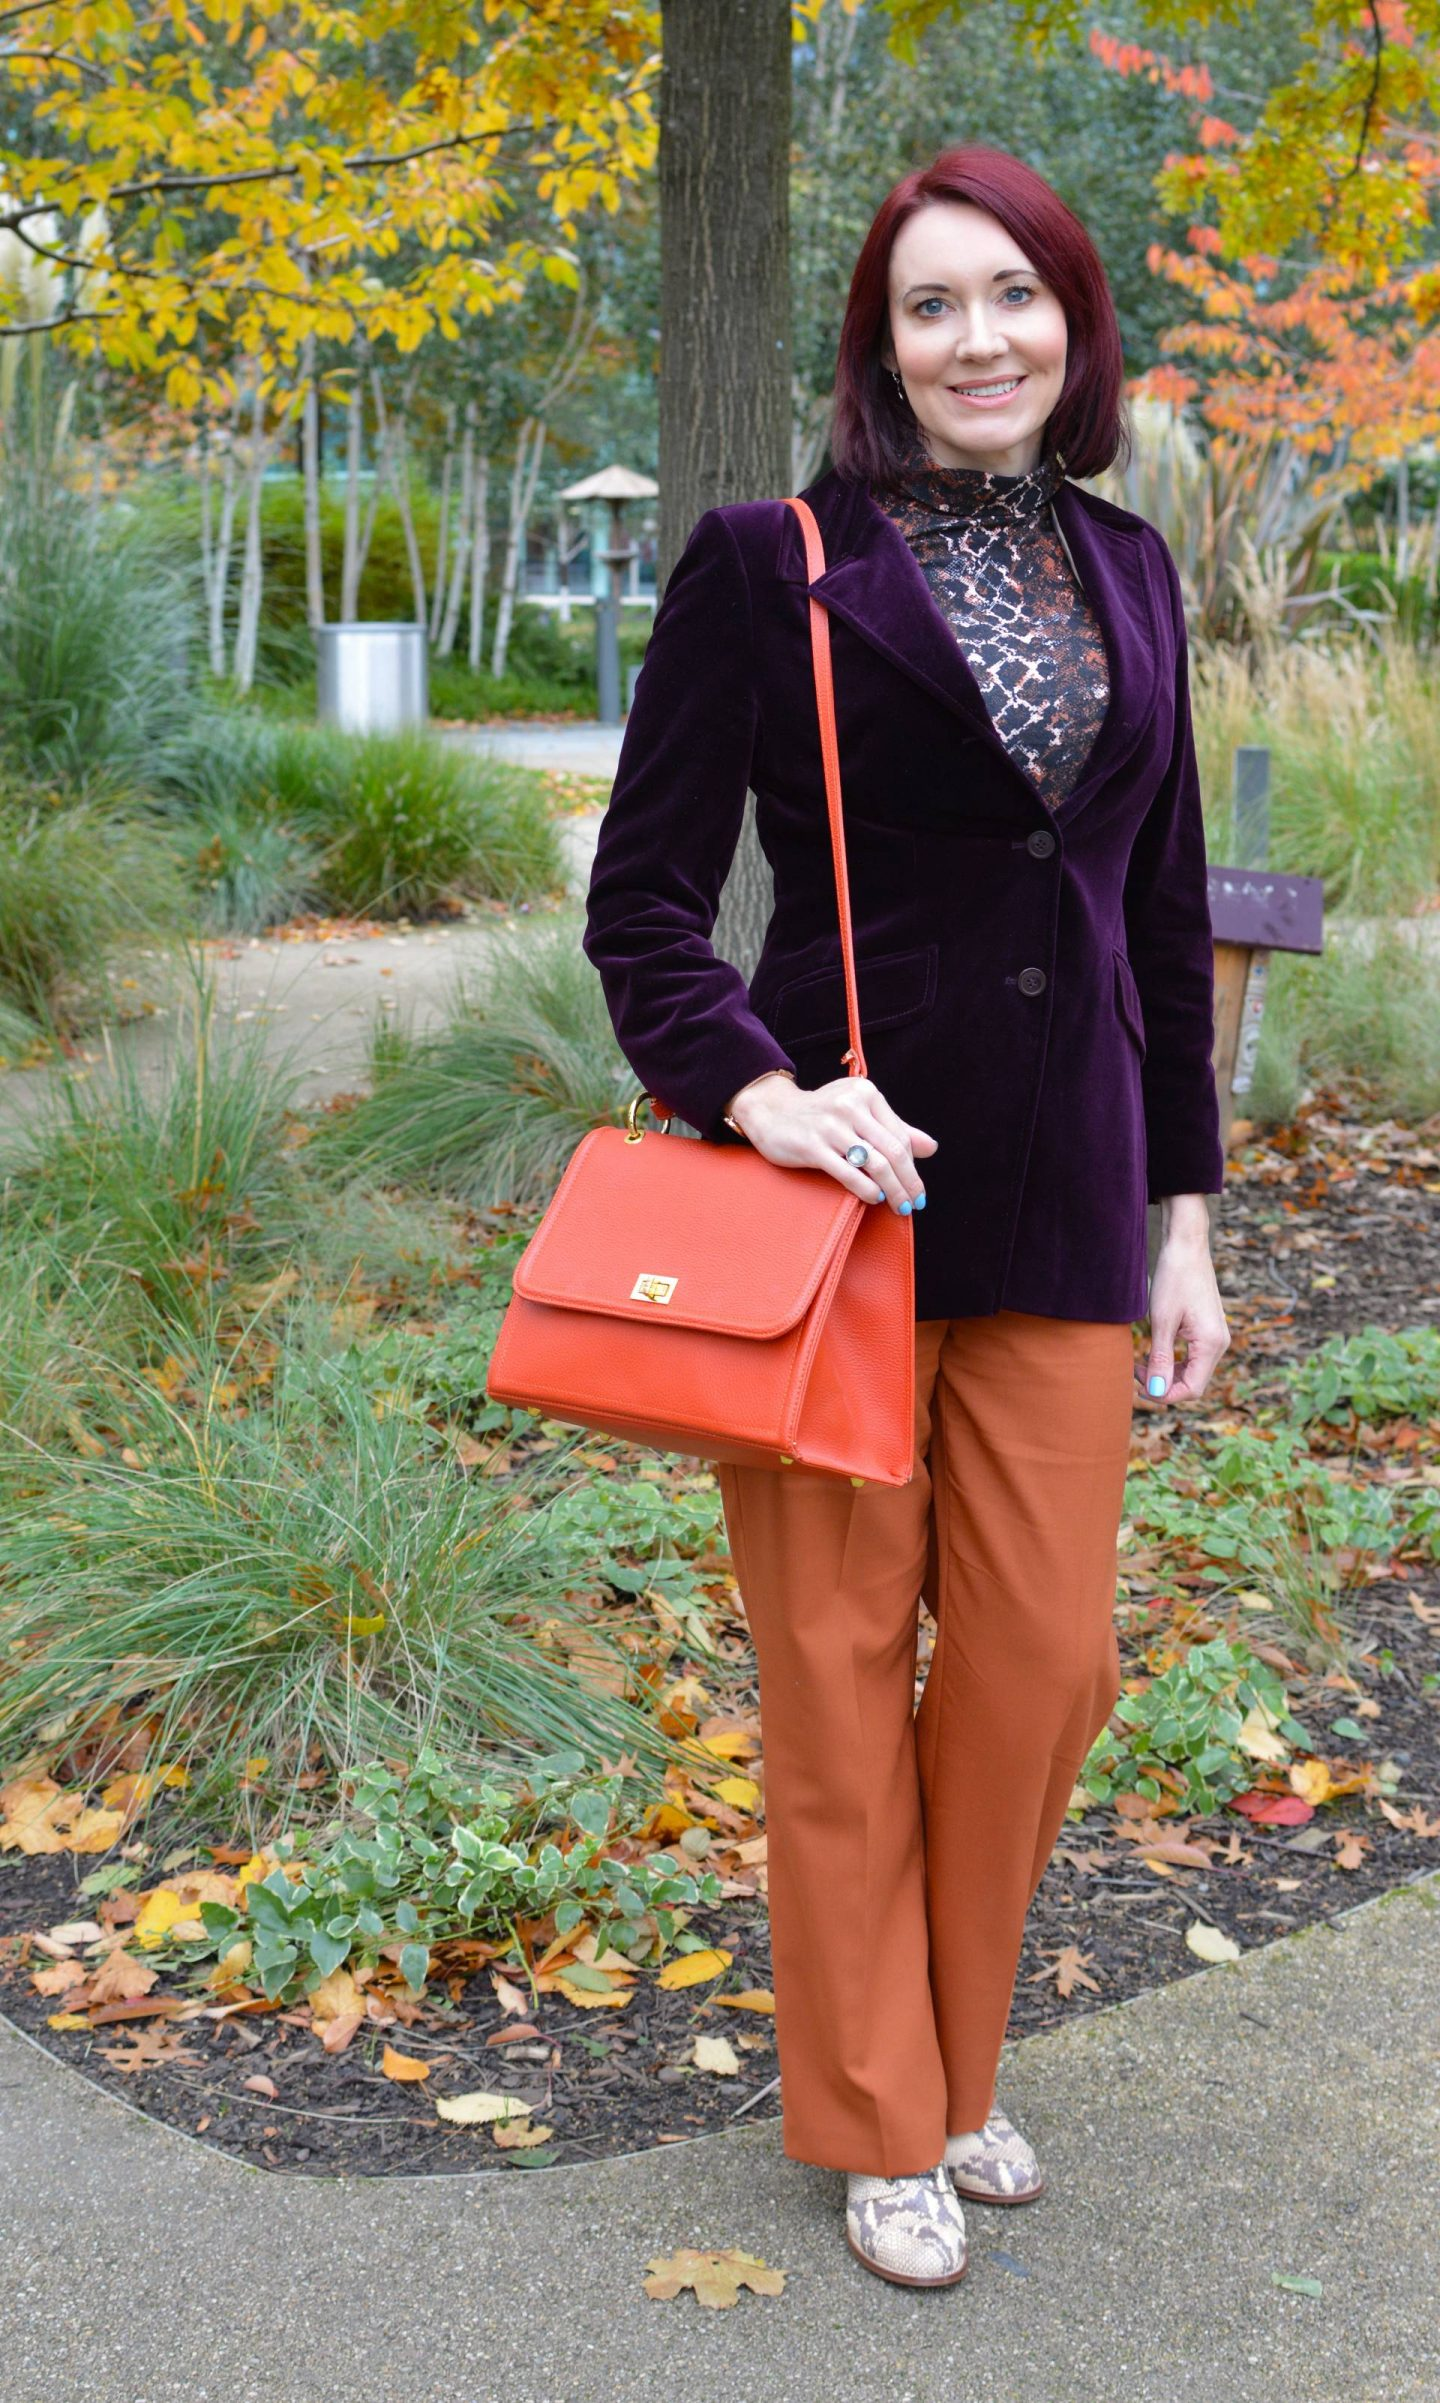 My Favourite Autumn Trend - October's Style Not Age